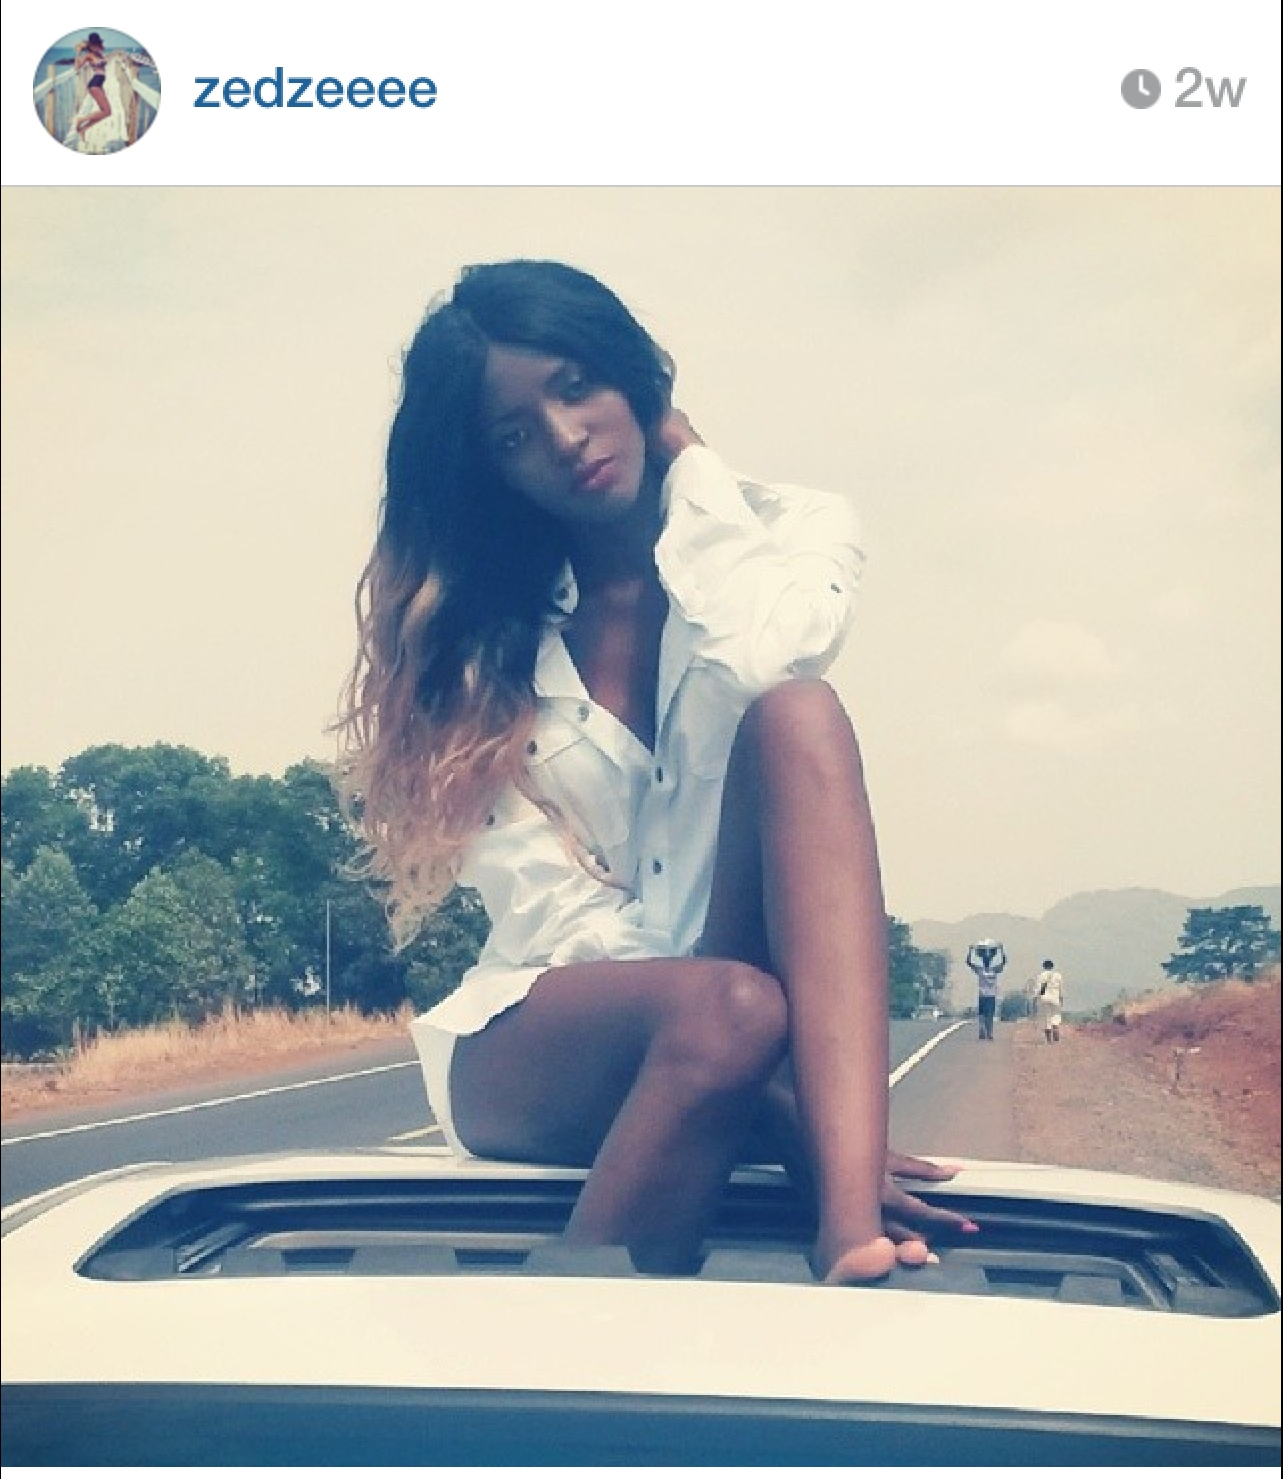 Zainab's posts don't reveal what song they are shooting the video for but they are definitely serving us some Salone goodness in this shoot.  Zainab is super sexy in her boyfriend shirt and heels and Emmerson is always cool.  They even captured a couple of locals in the background of Zainab's sunroof shot. Ha! Always good to see our people collaborating across industries.  We'll be looking out for the final product.